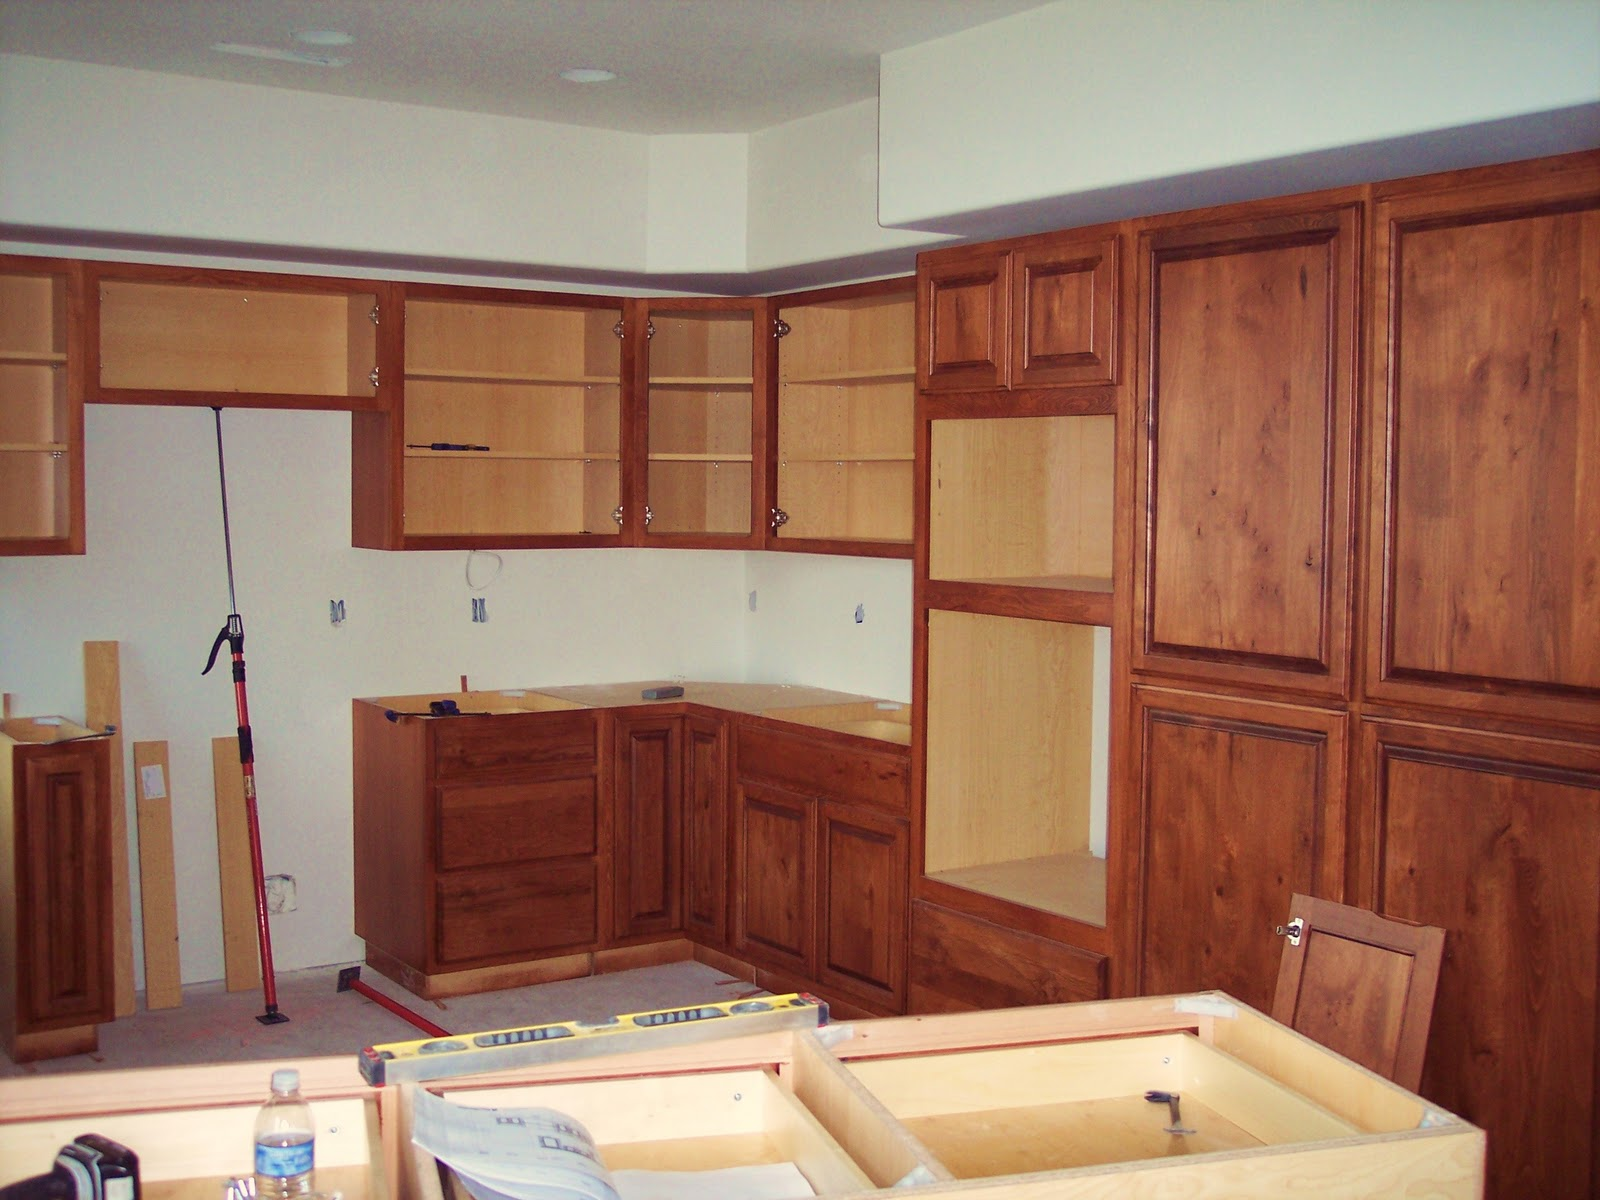 Building a home cabinets for Kitchen cabinets 4 less